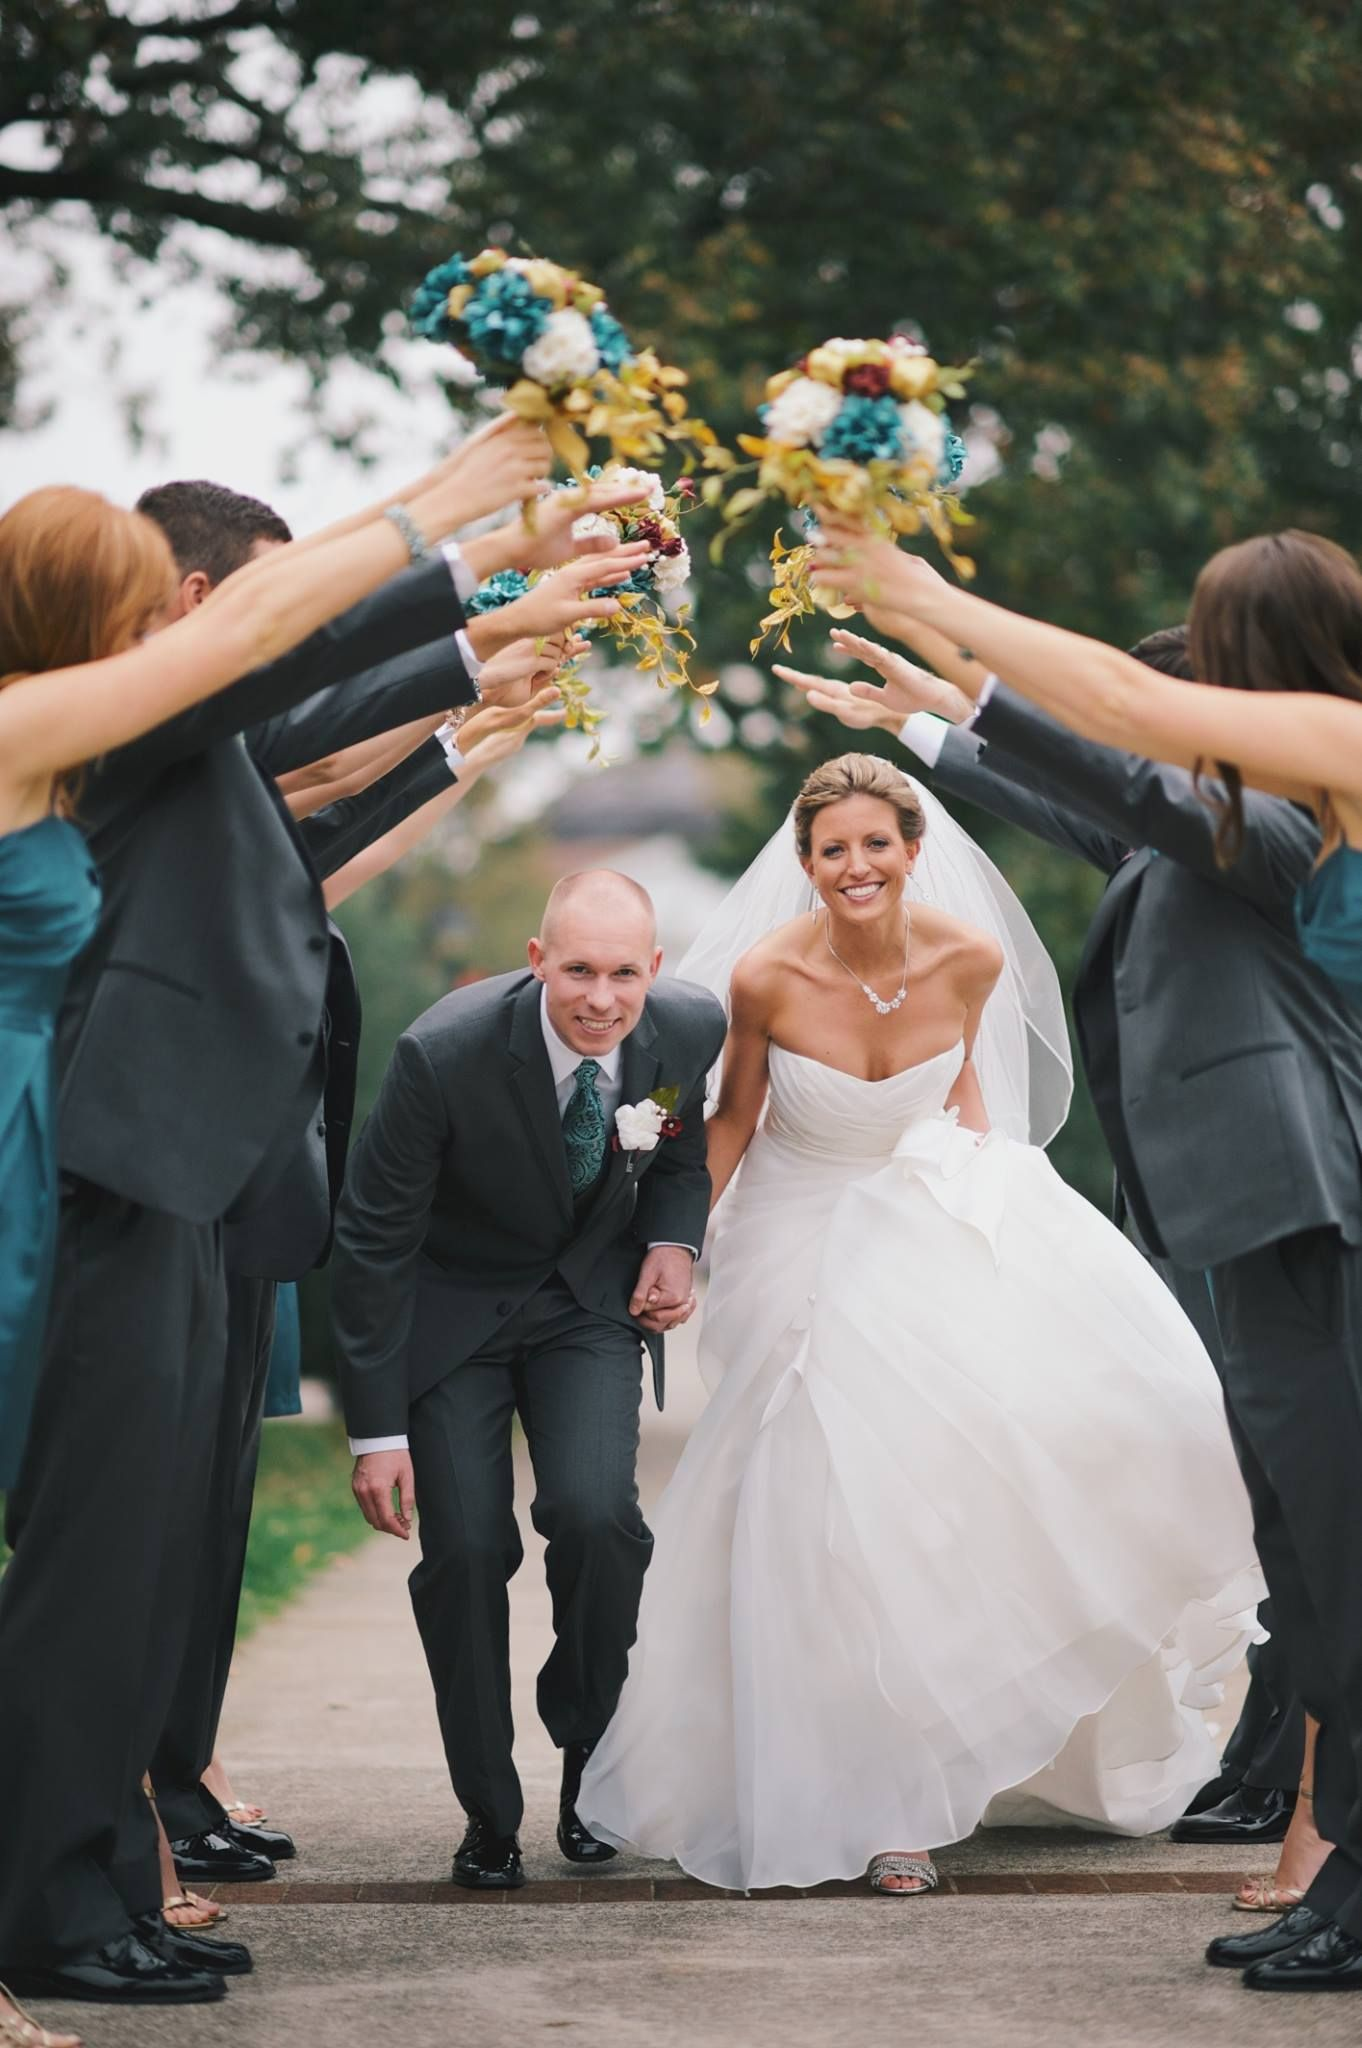 Bridal Party Salute Wedding Photography Bride And Groom Outdoor Pictures